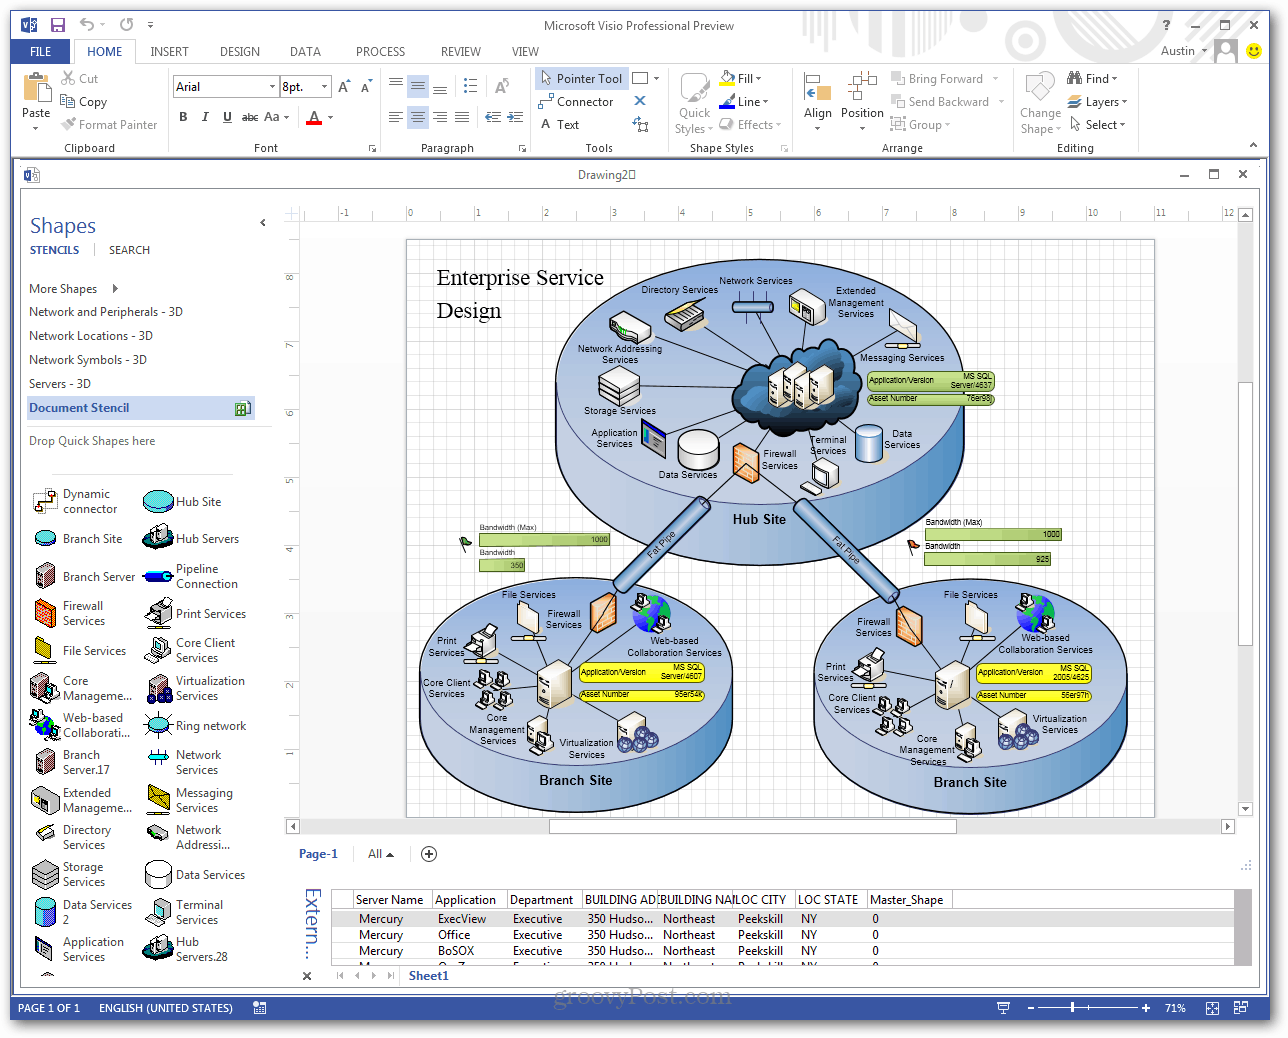 What Is Microsoft Visio And Does It Do Groovypost Block Diagram Word This Makes Diagrams Functional Current The Most Recent Example Ive Seen Involved Using To Monitor Network Status Across A Localized Broadband